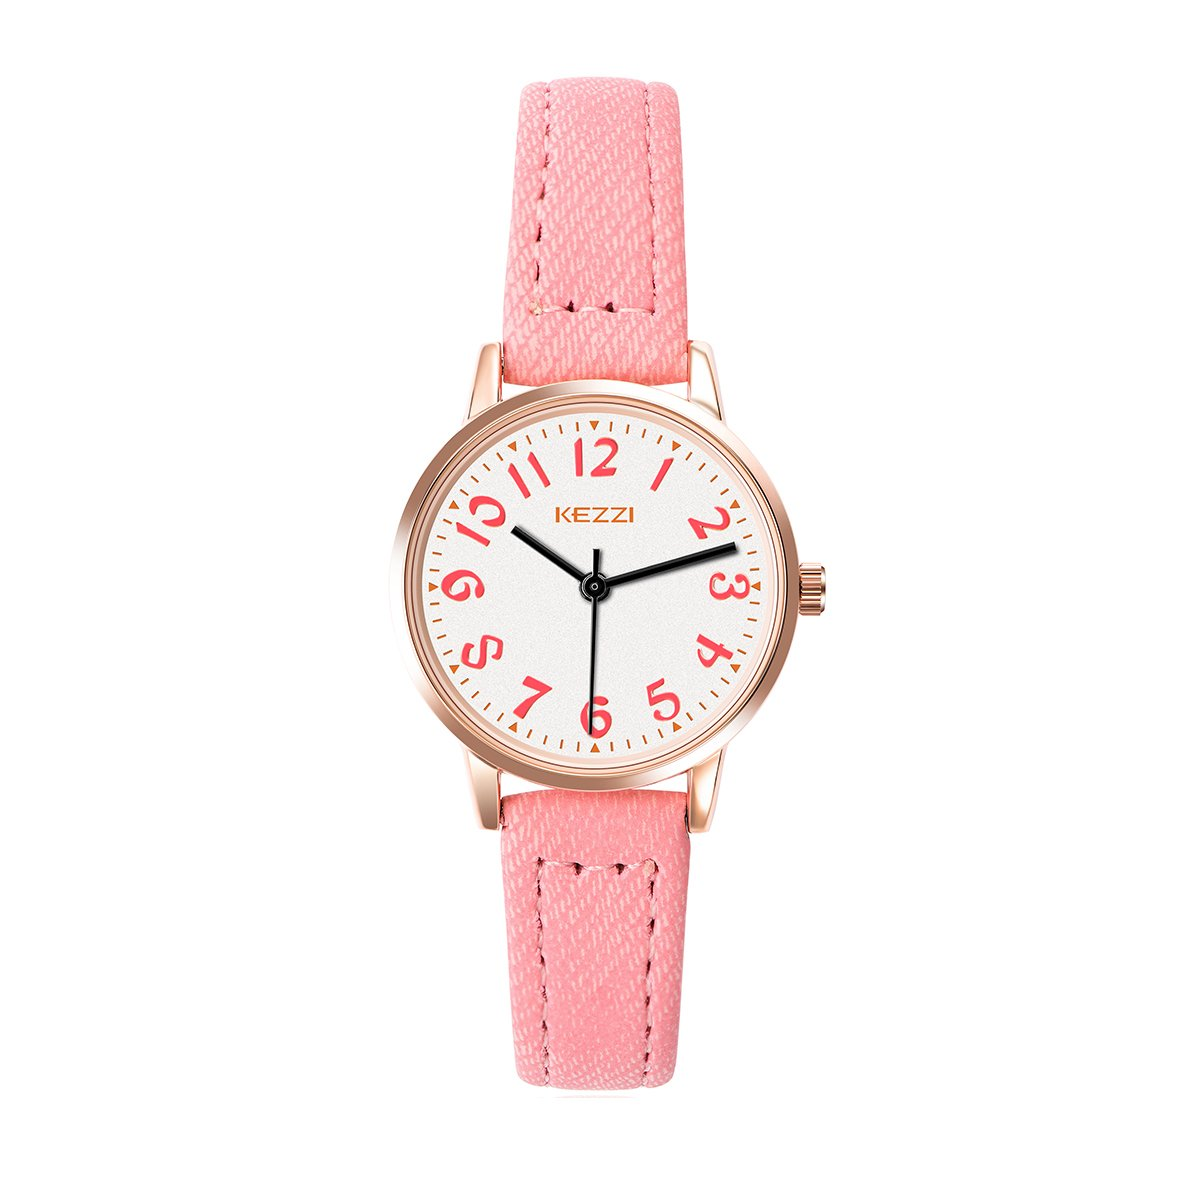 7b791cc27ec22 Get Quotations · ARMIDO Watches for Girls – Easy Time Telling Kids Watch  with Pink Faux Leather Strap